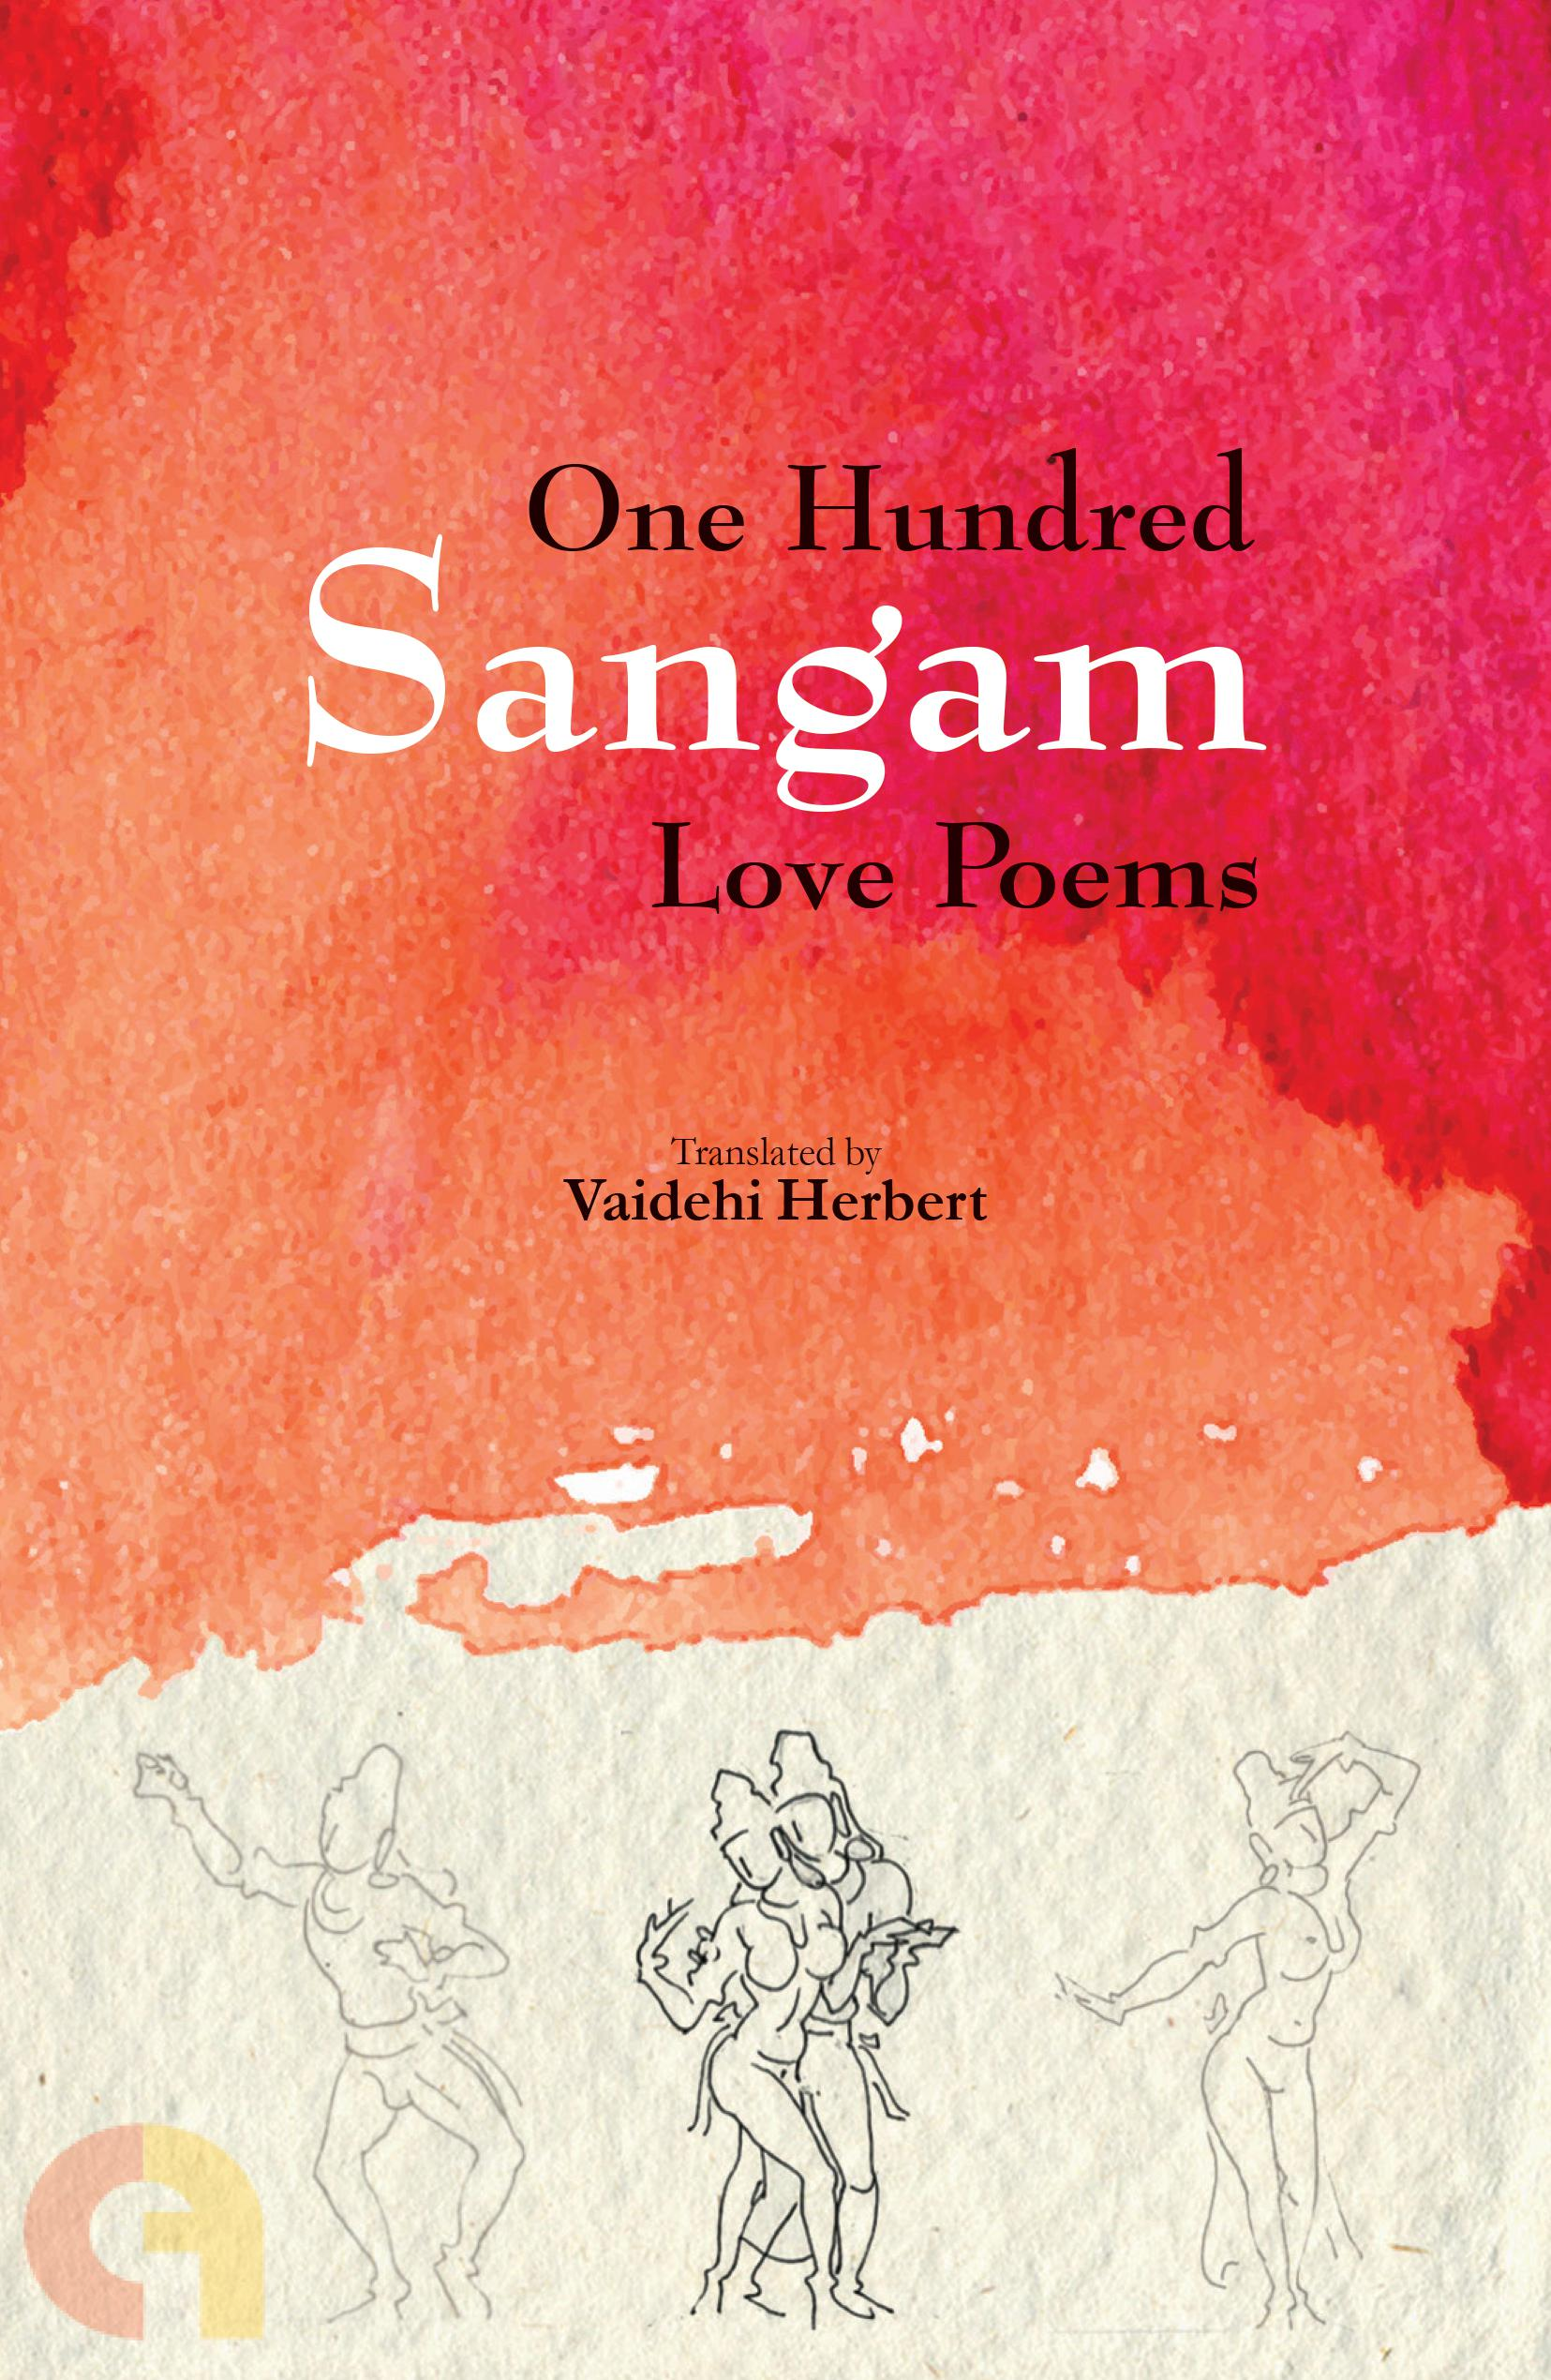 One Hundred Sangam Love Poems